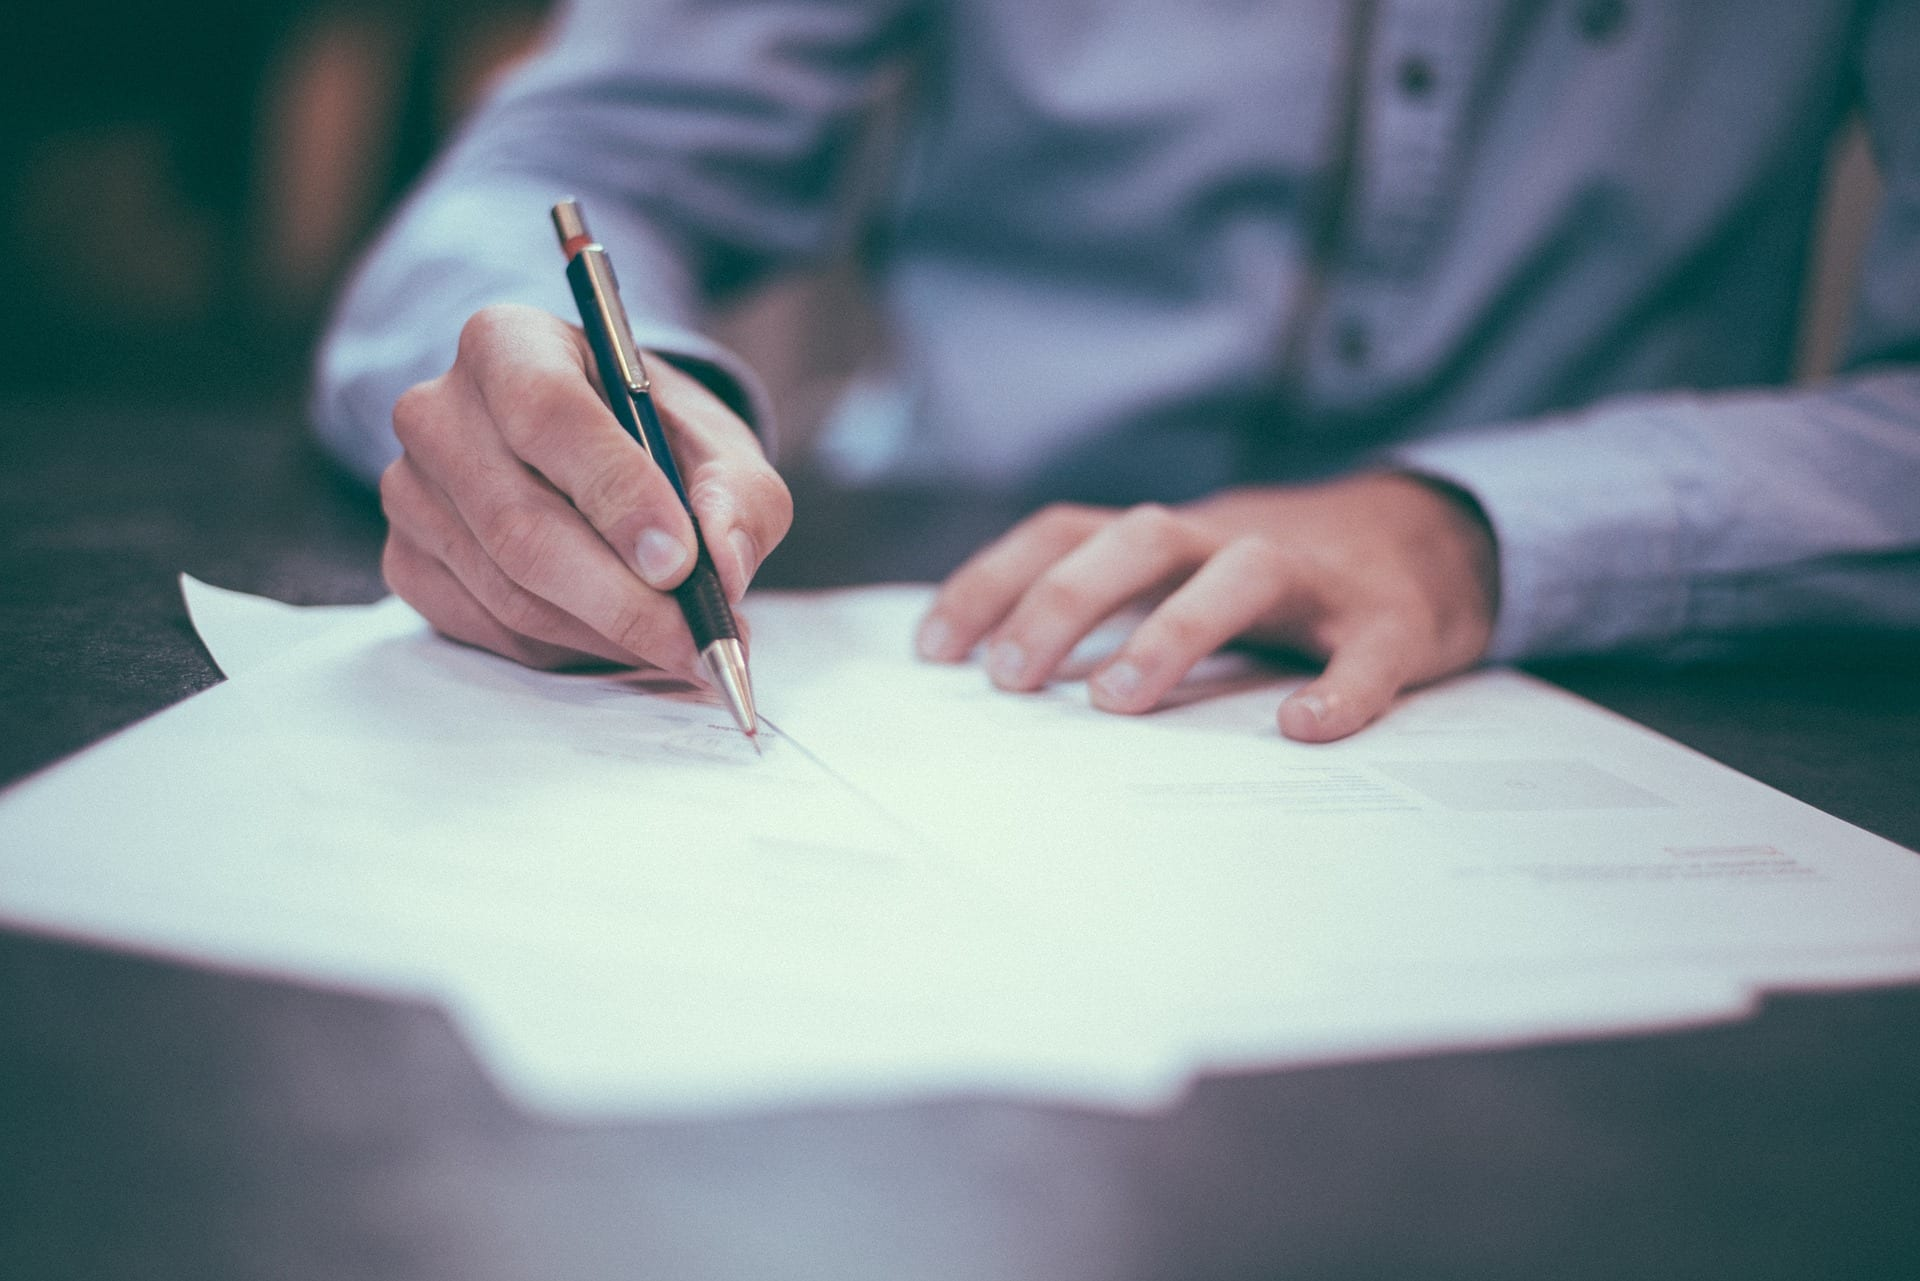 Lawyer - Abogado - Conveyancing - Due Diligence - Purchase Contract